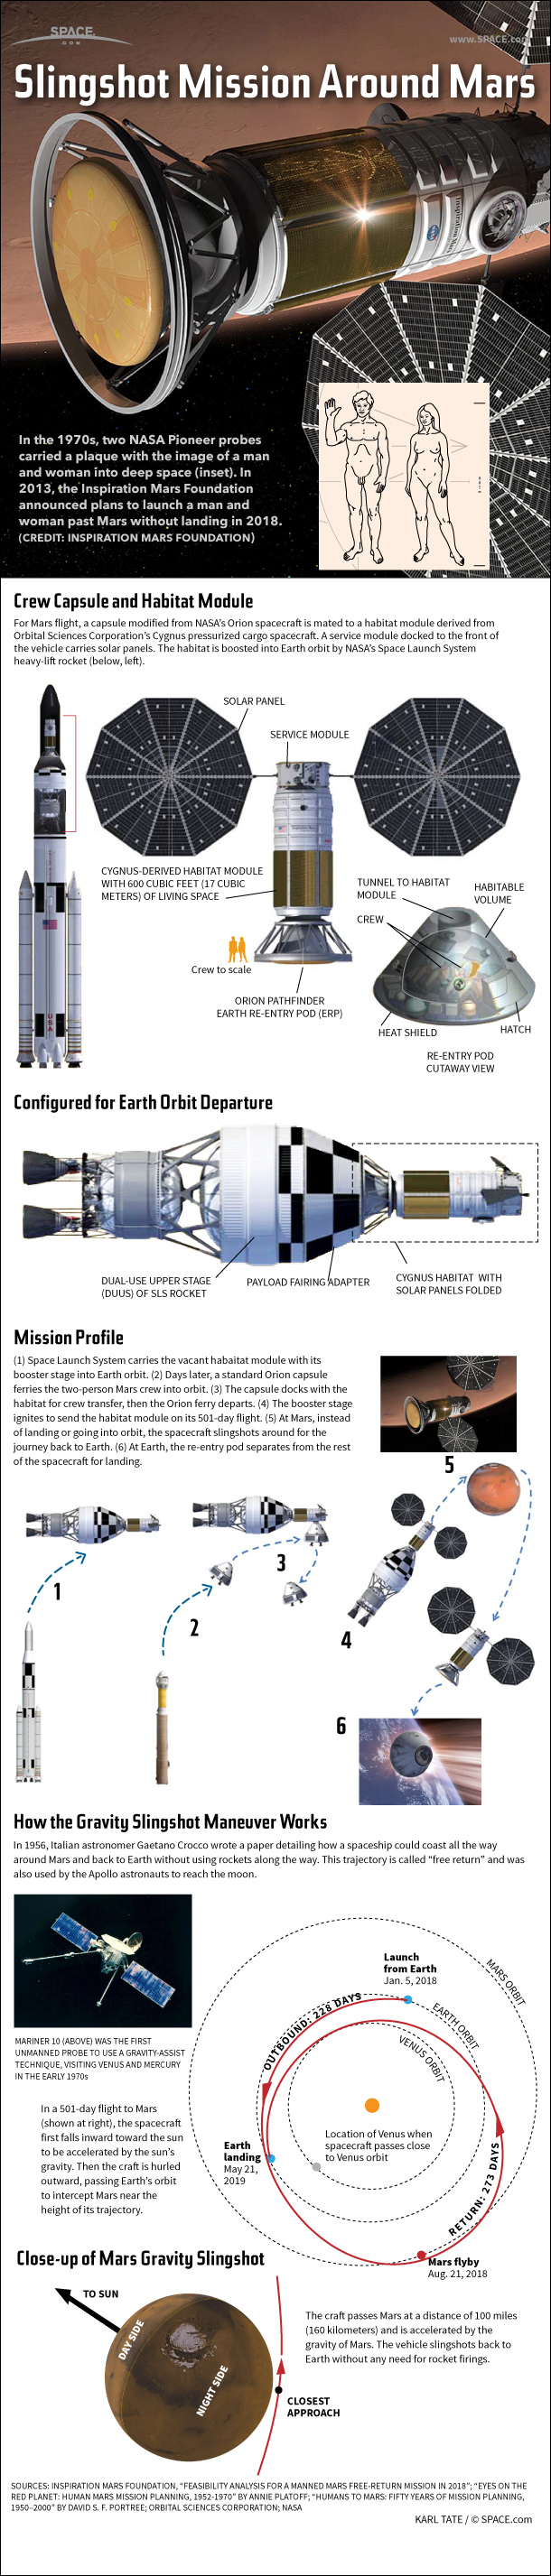 Infographic: Space tourist Dennis Tito's daring proposal to send a man and a woman on a 501-day space flight around the planet Mars explained.